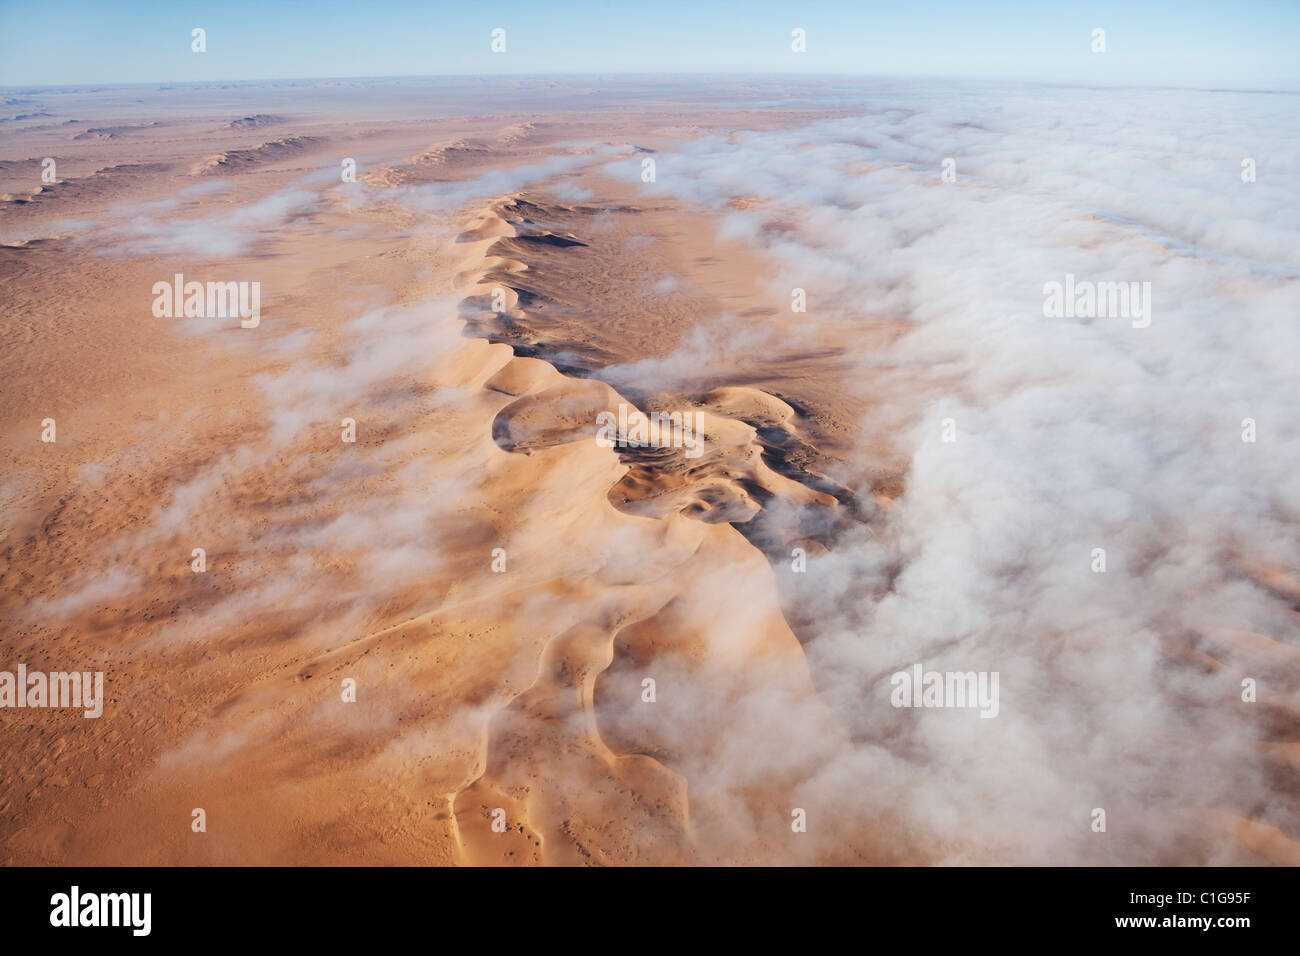 Aerial view of sand dunes of the Namibian desert - Stock Image